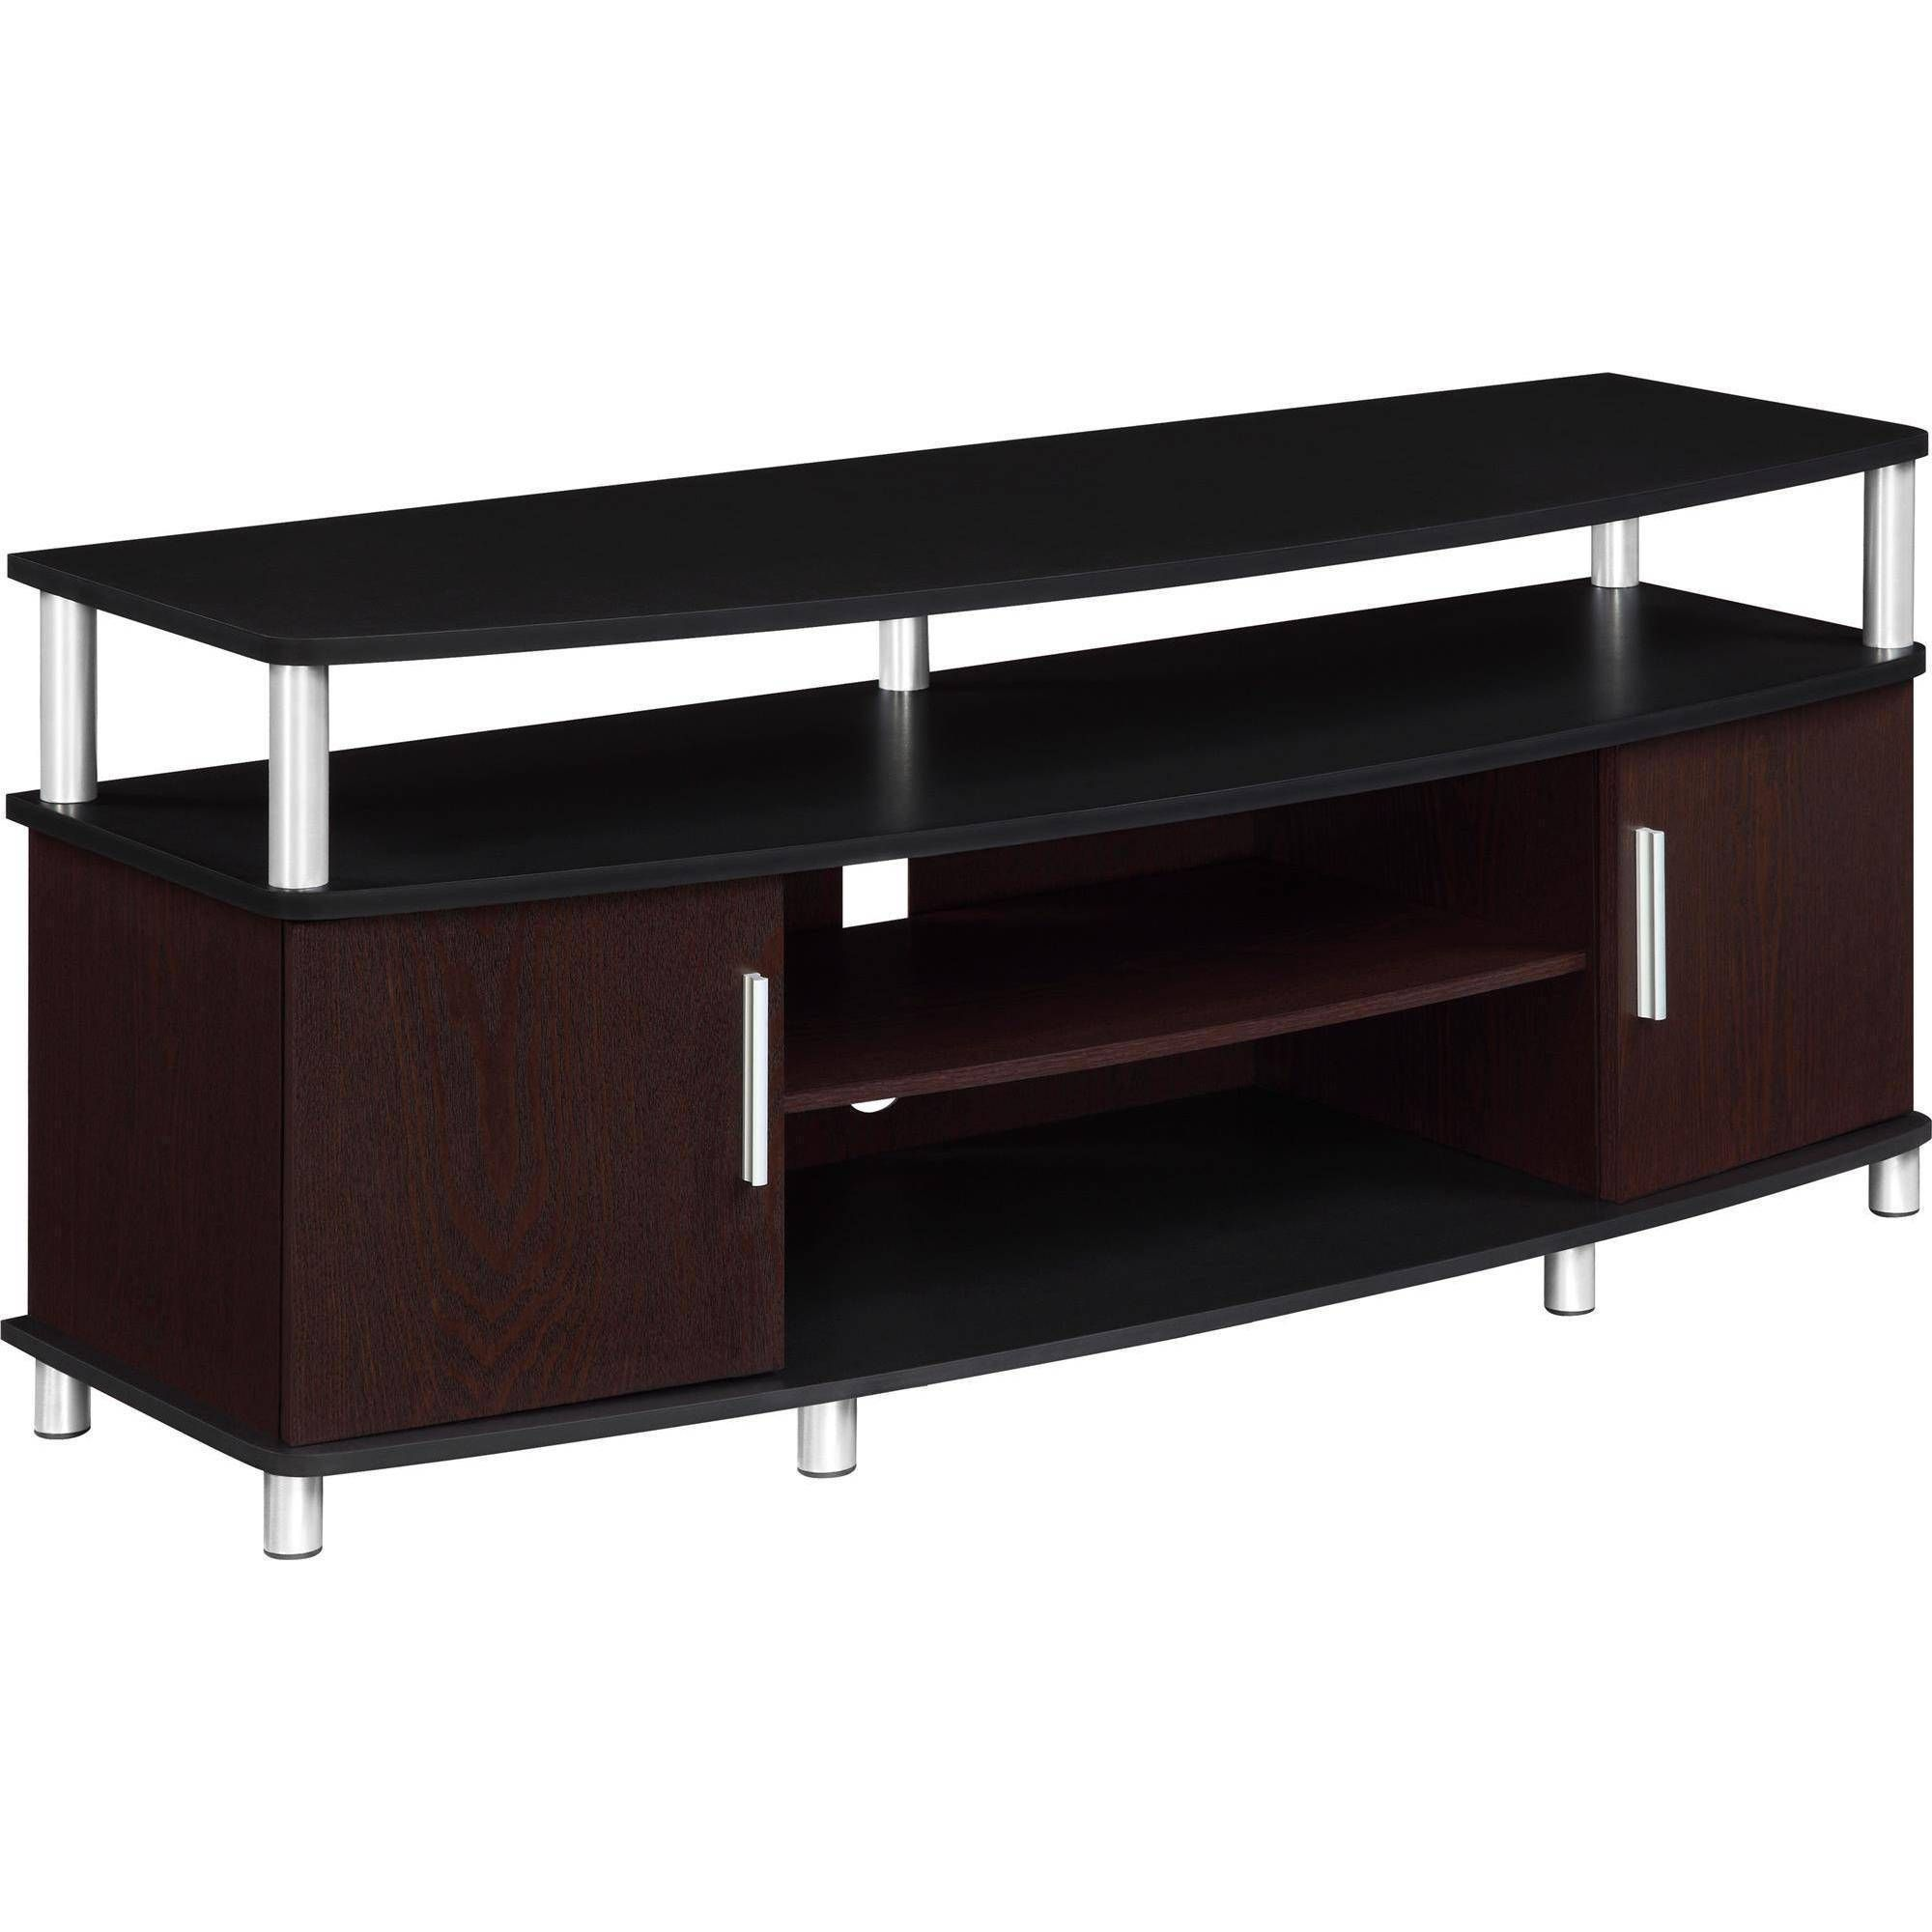 Carson TV Stand for TVs up to 50 Inch Multiple Finishes for $65 tv stand tvs 50 inch multiple finishes 65